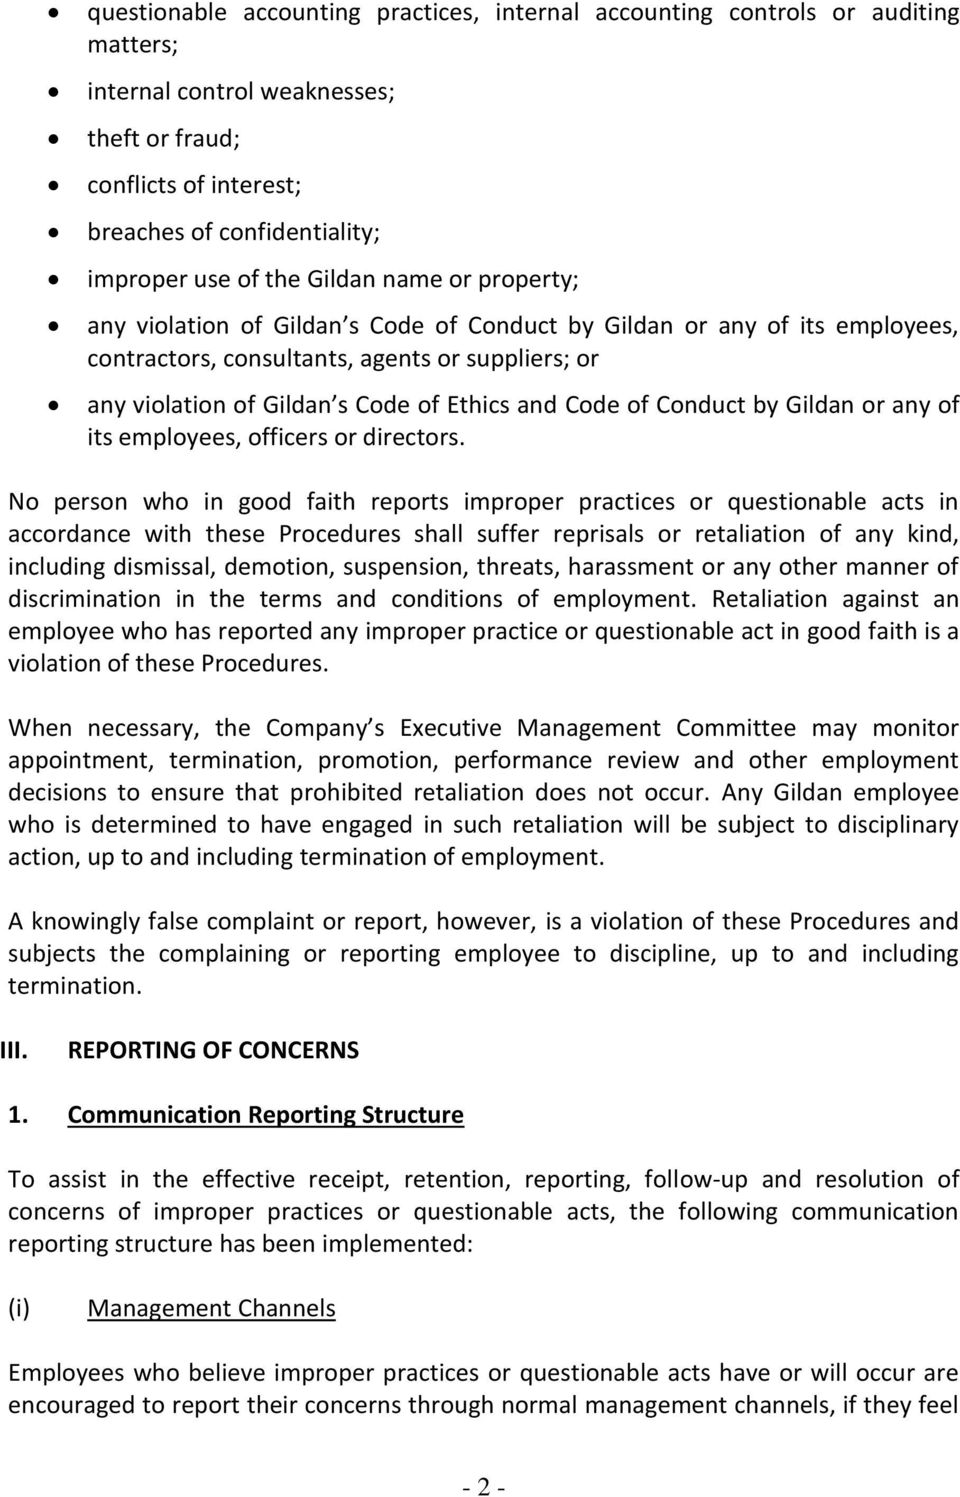 and Code of Conduct by Gildan or any of its employees, officers or directors.